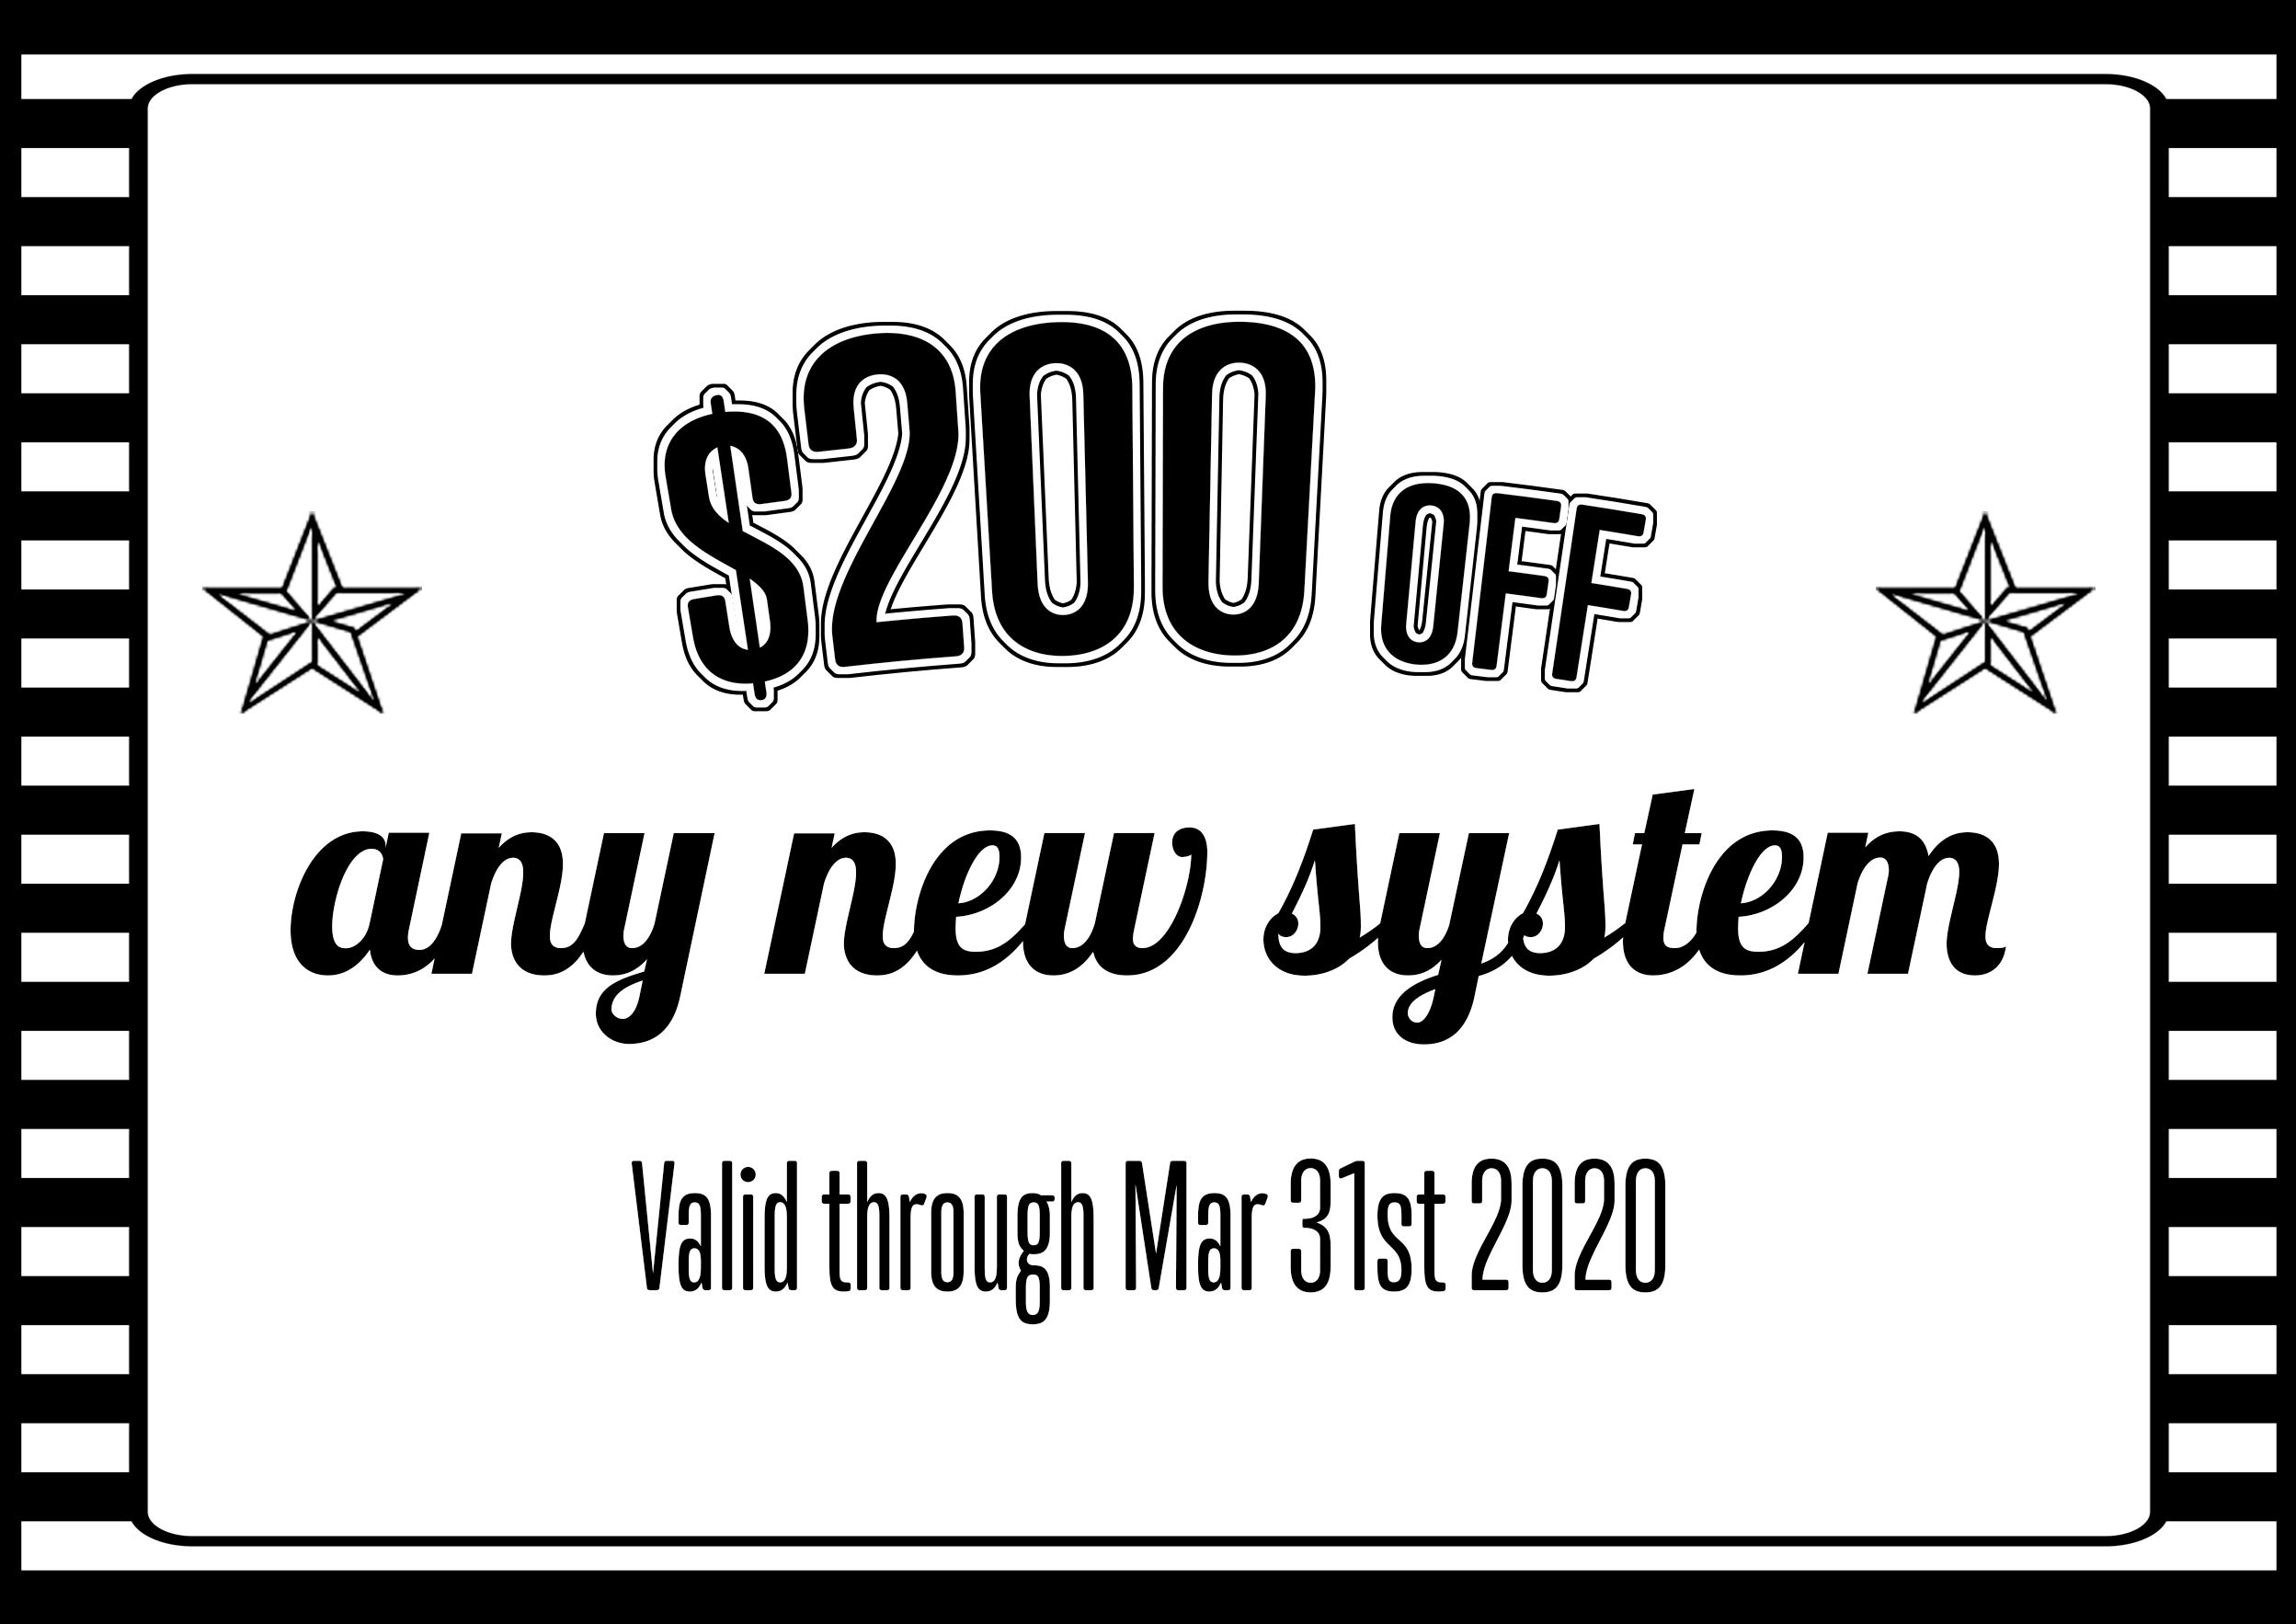 $200 off new AC system